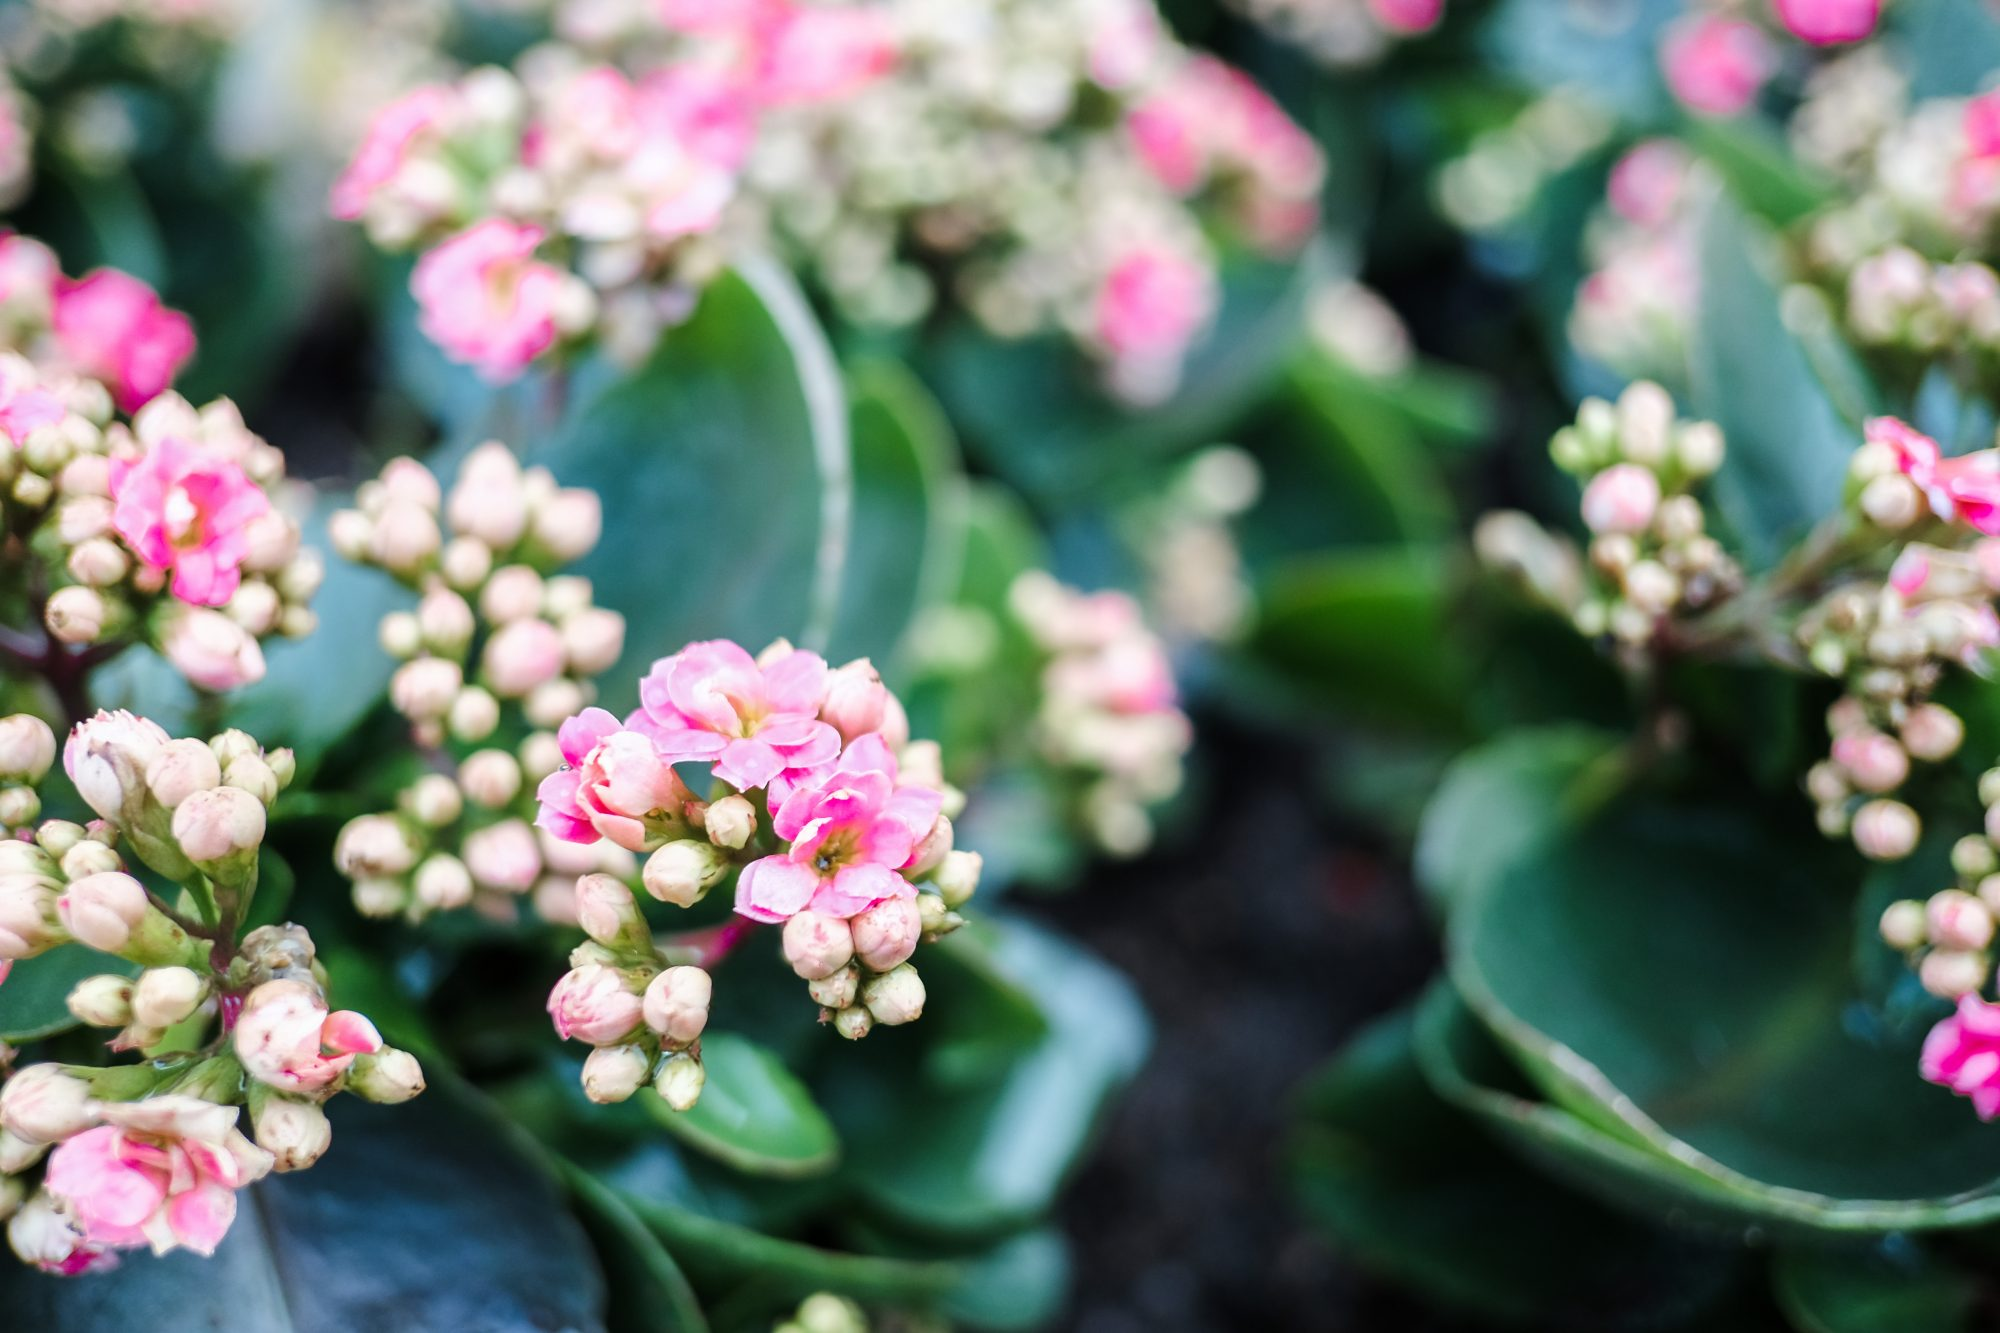 kalanchoe plant with pink flowers